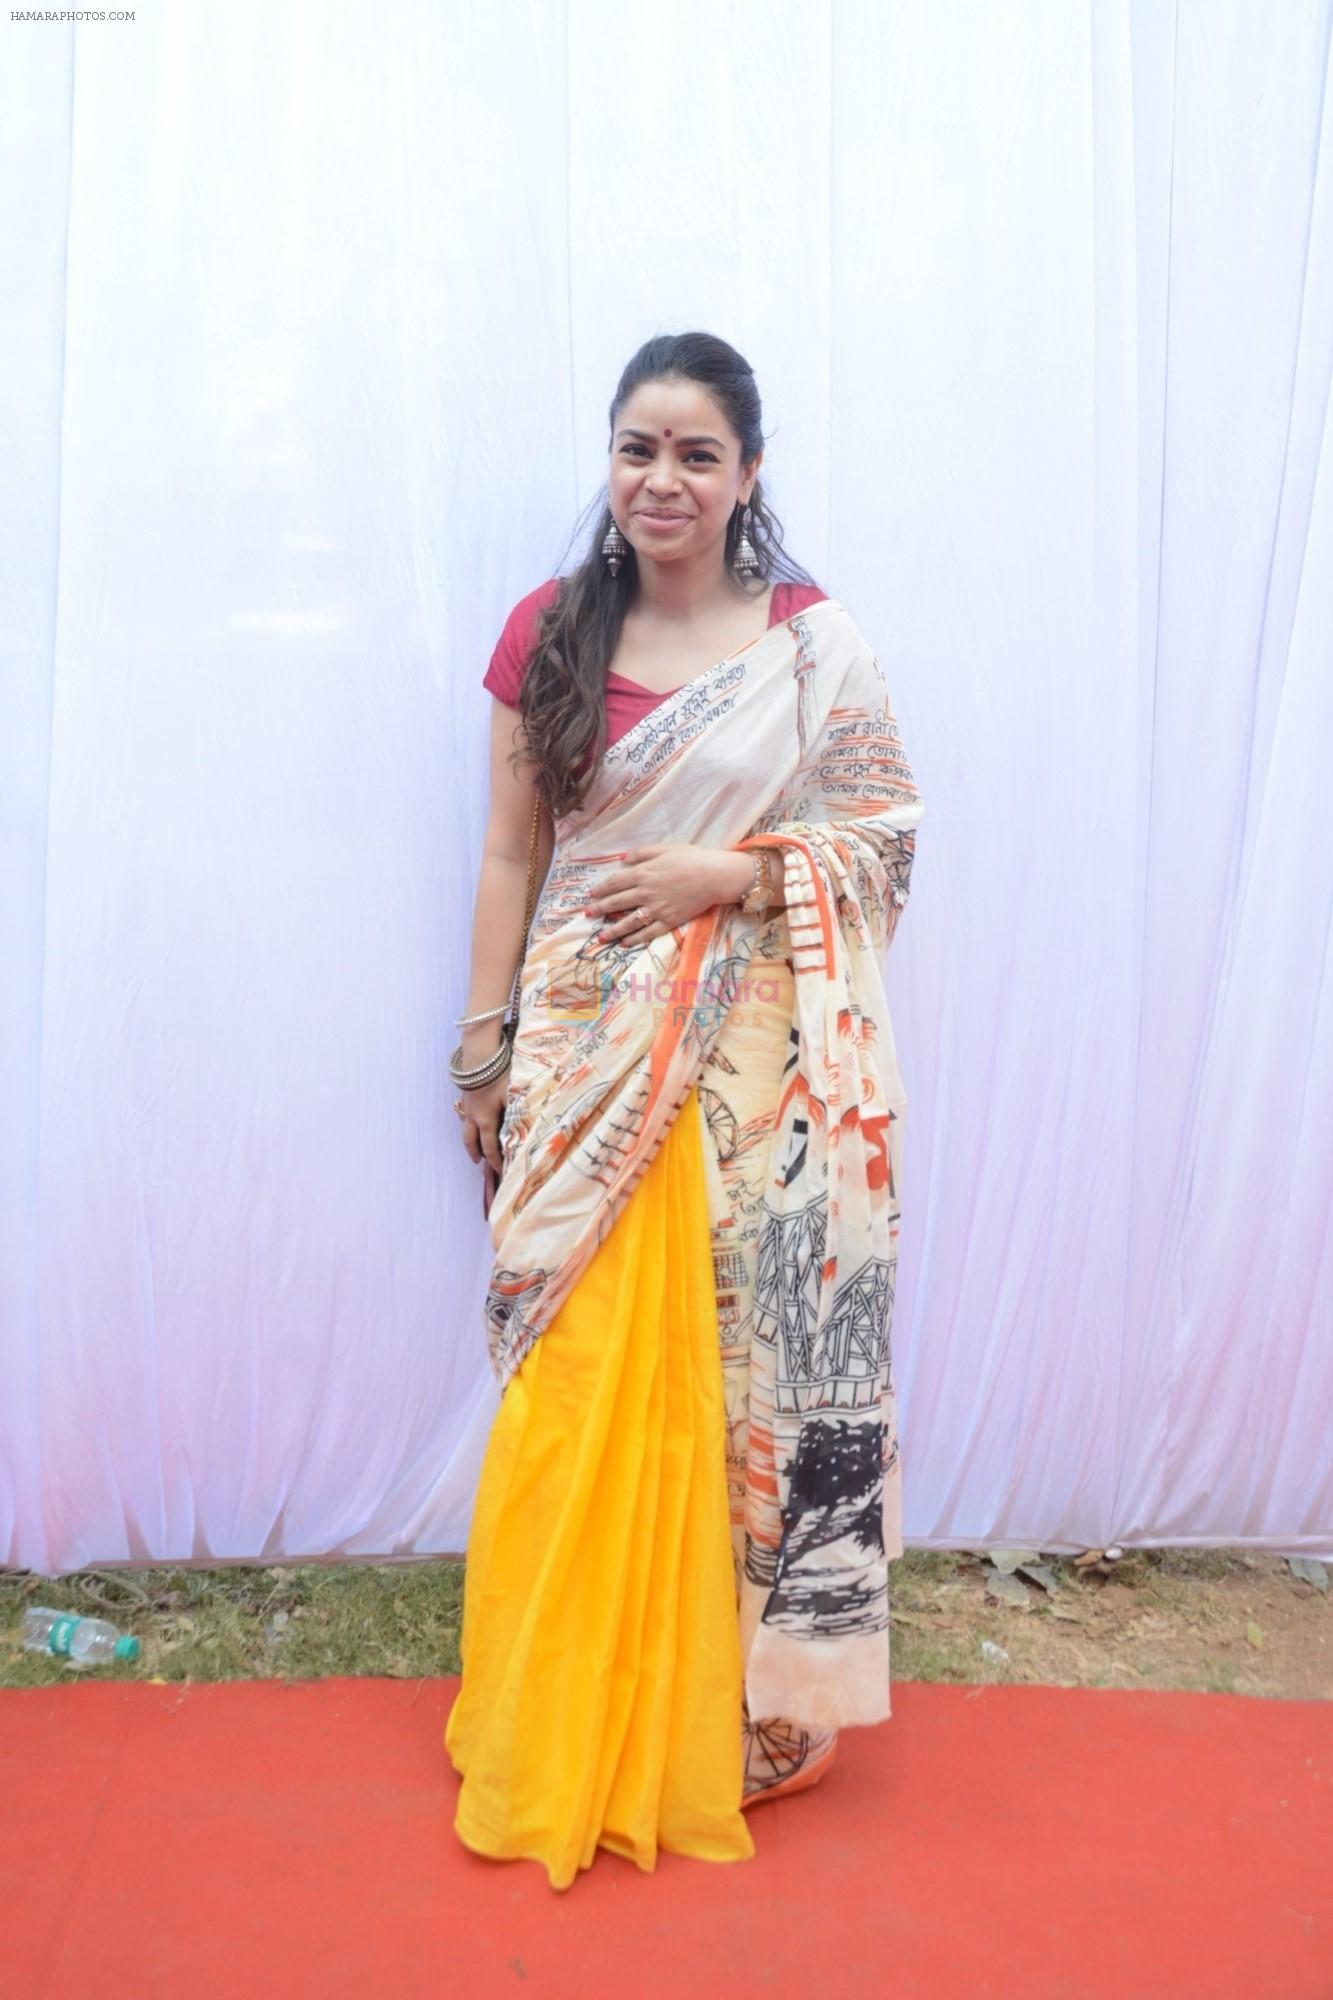 Sumona Chakravarti at Saraswati pujan at Anurag Basu's house in goregaon on 10th Feb 2019